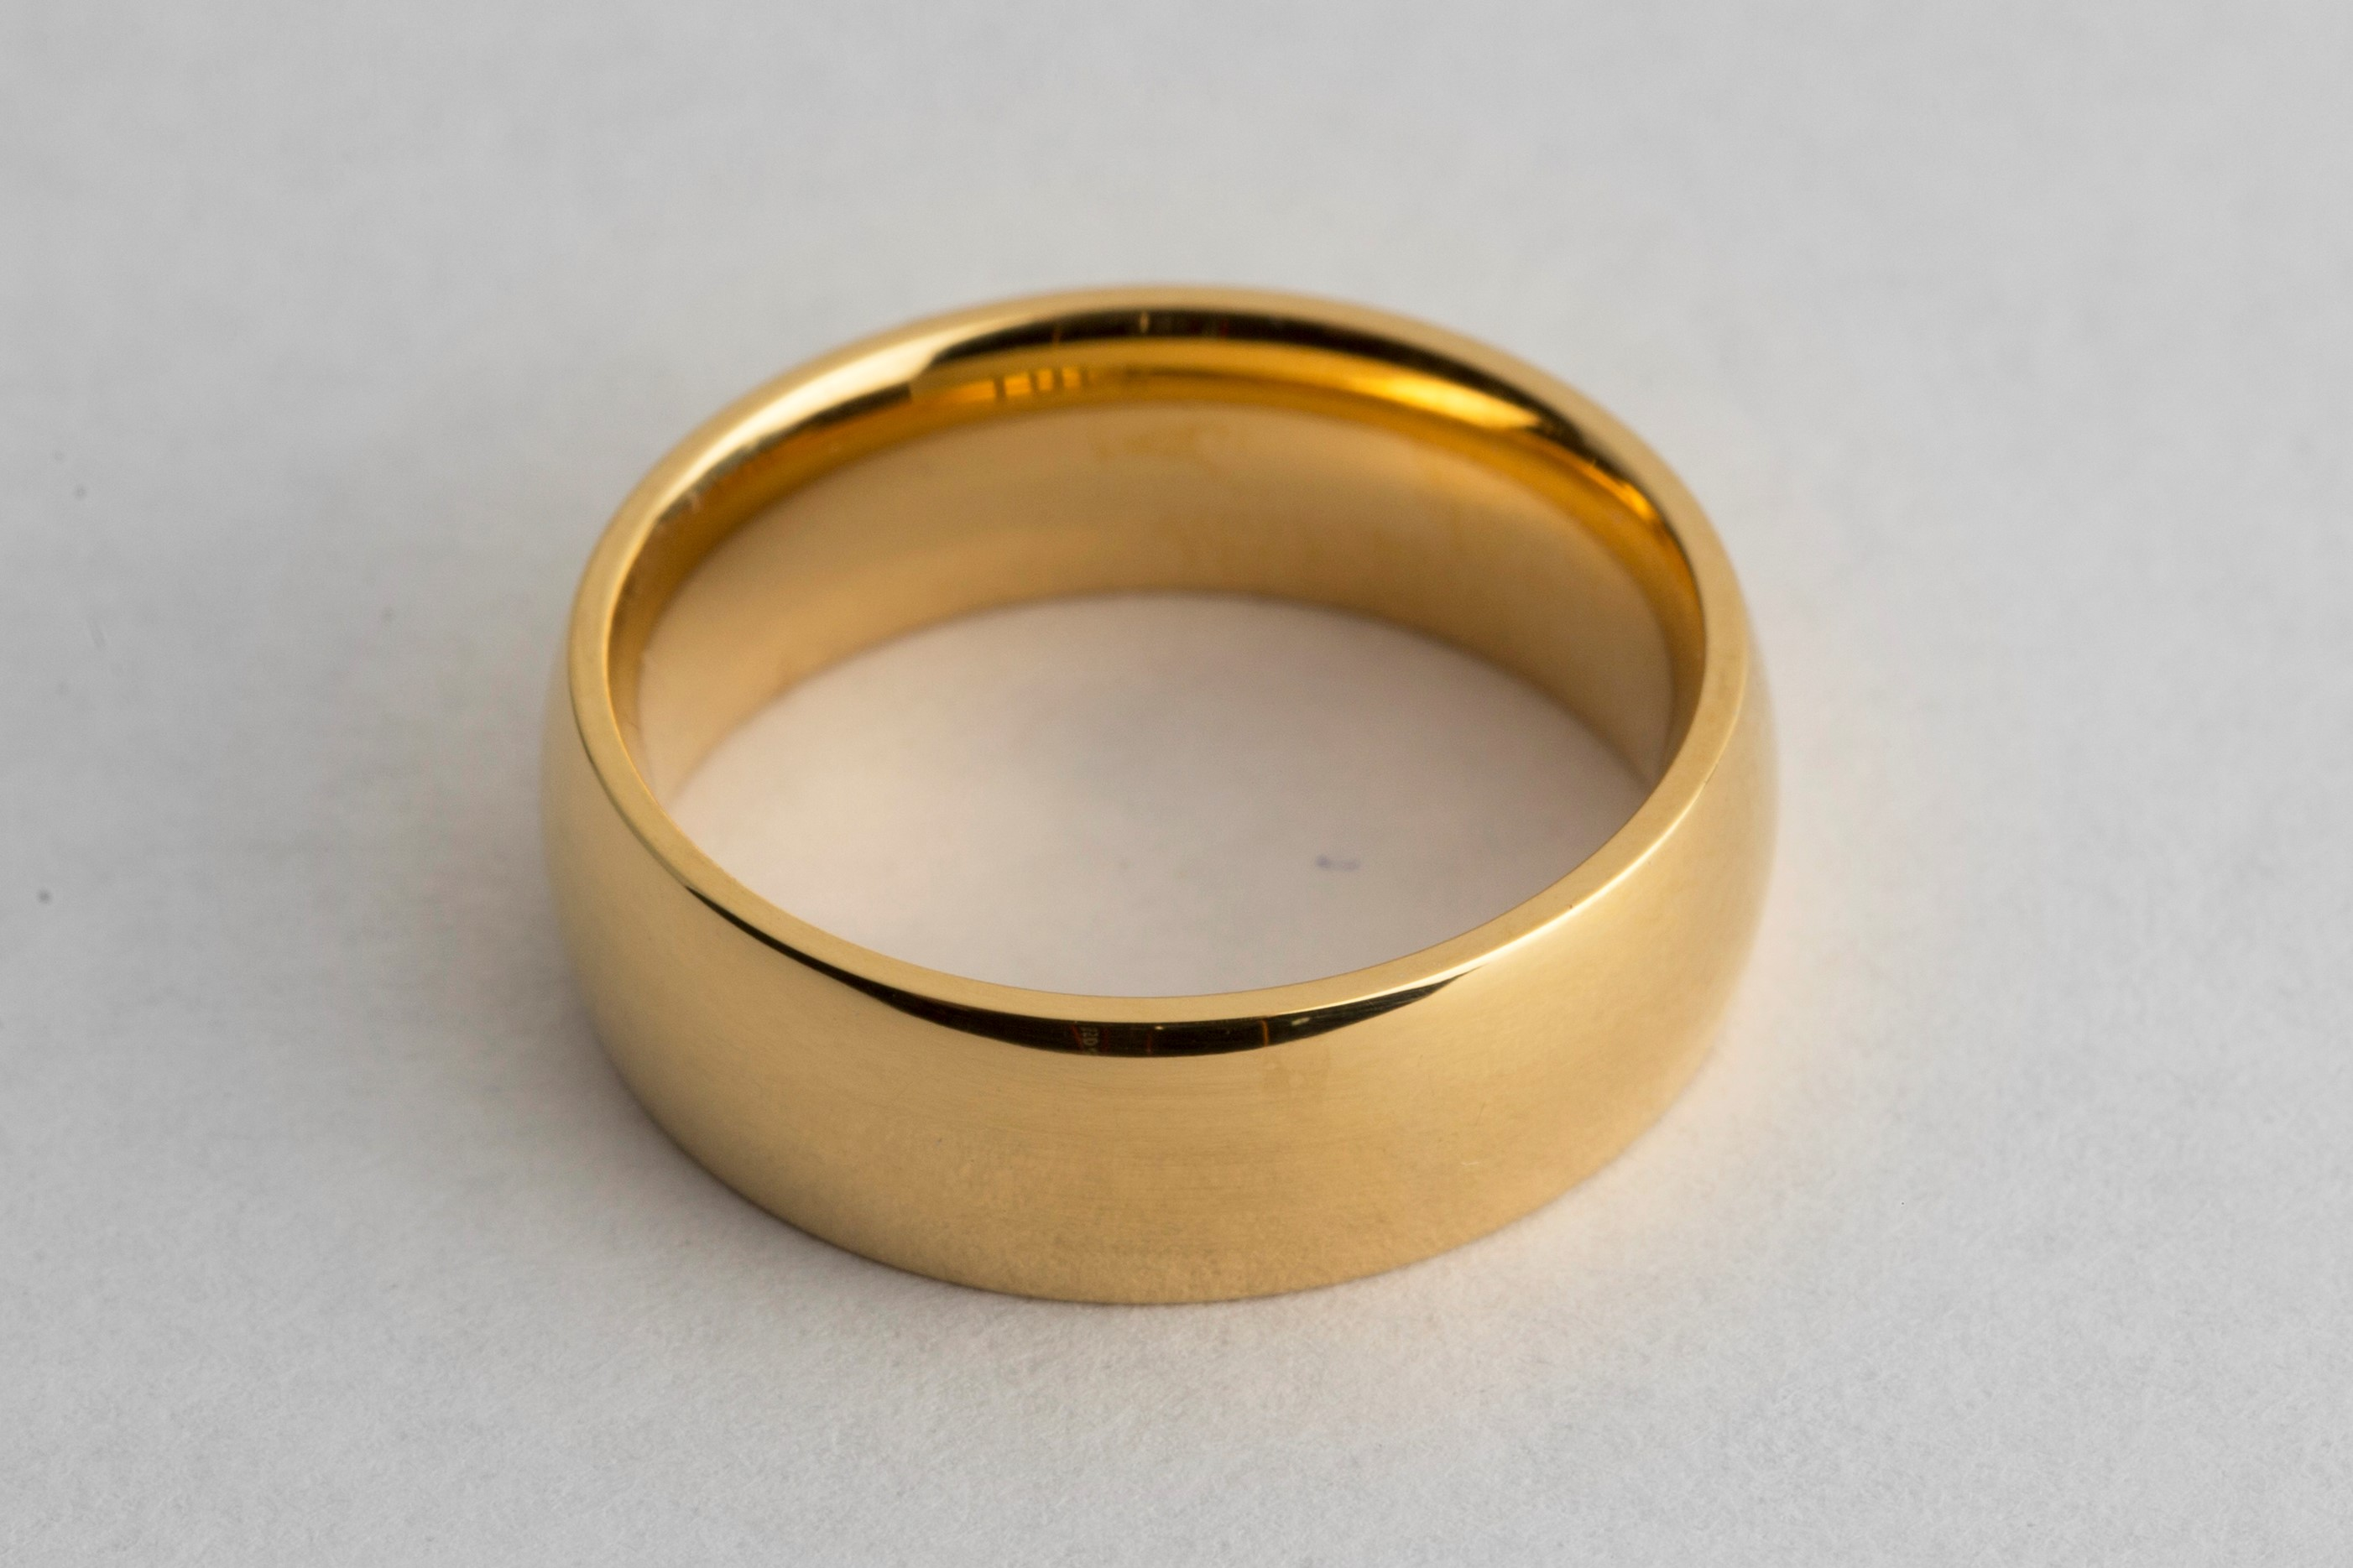 Gold ring electroplated with tank gold plating solution